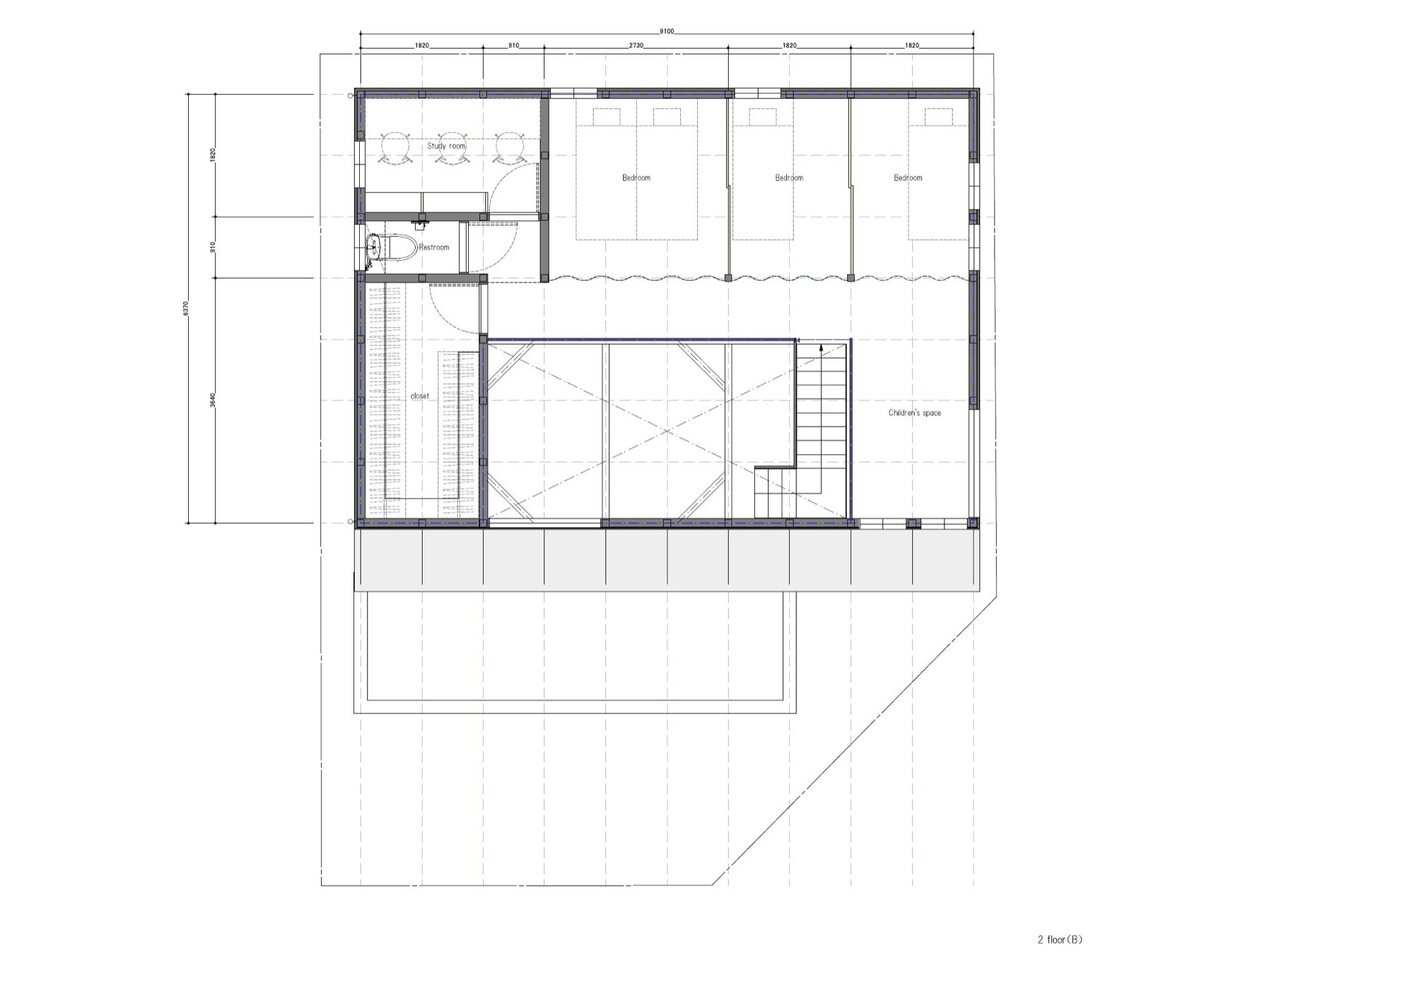 S-House - Coil Kazuteru Matumura Architects - Japan - Floor Plan 2 - Humble Homes